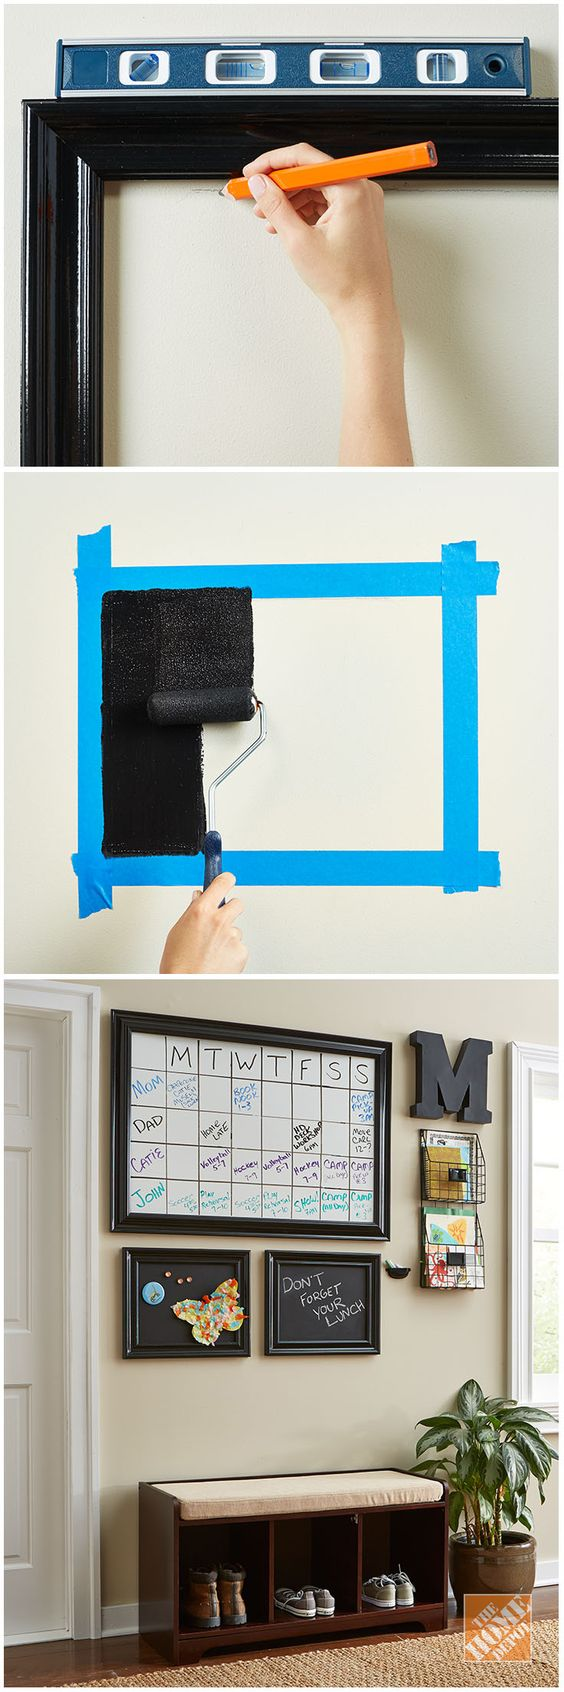 Paint A Family Message Board On Your Wall Messages